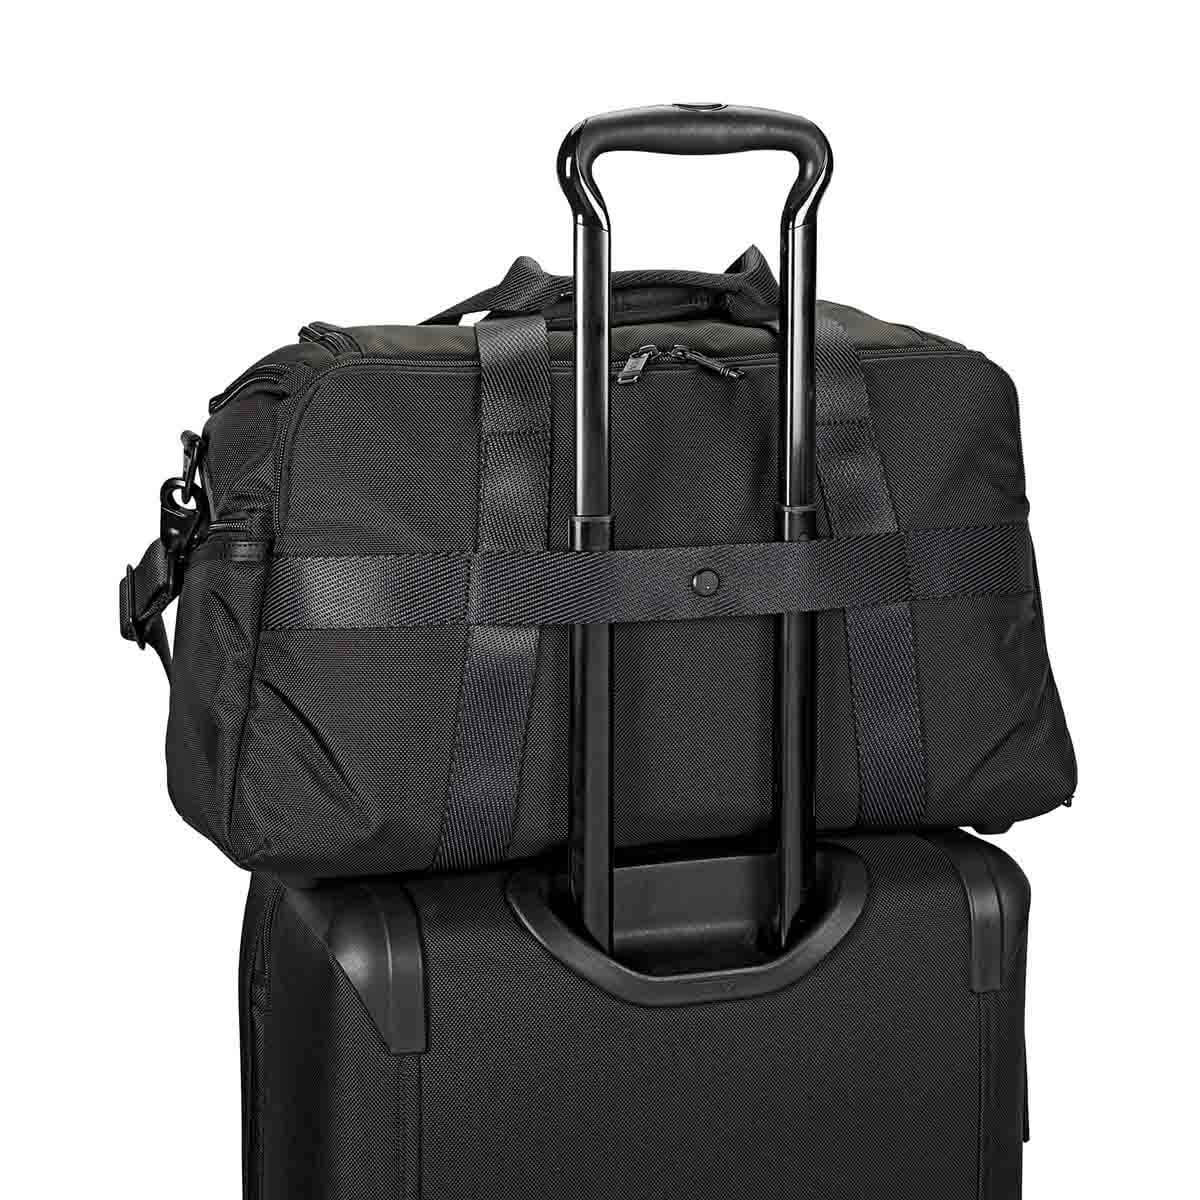 864d2a9767 Tumi - Alpha Bravo Day Bags - Mccoy Gym Bag - Caseluggage.com